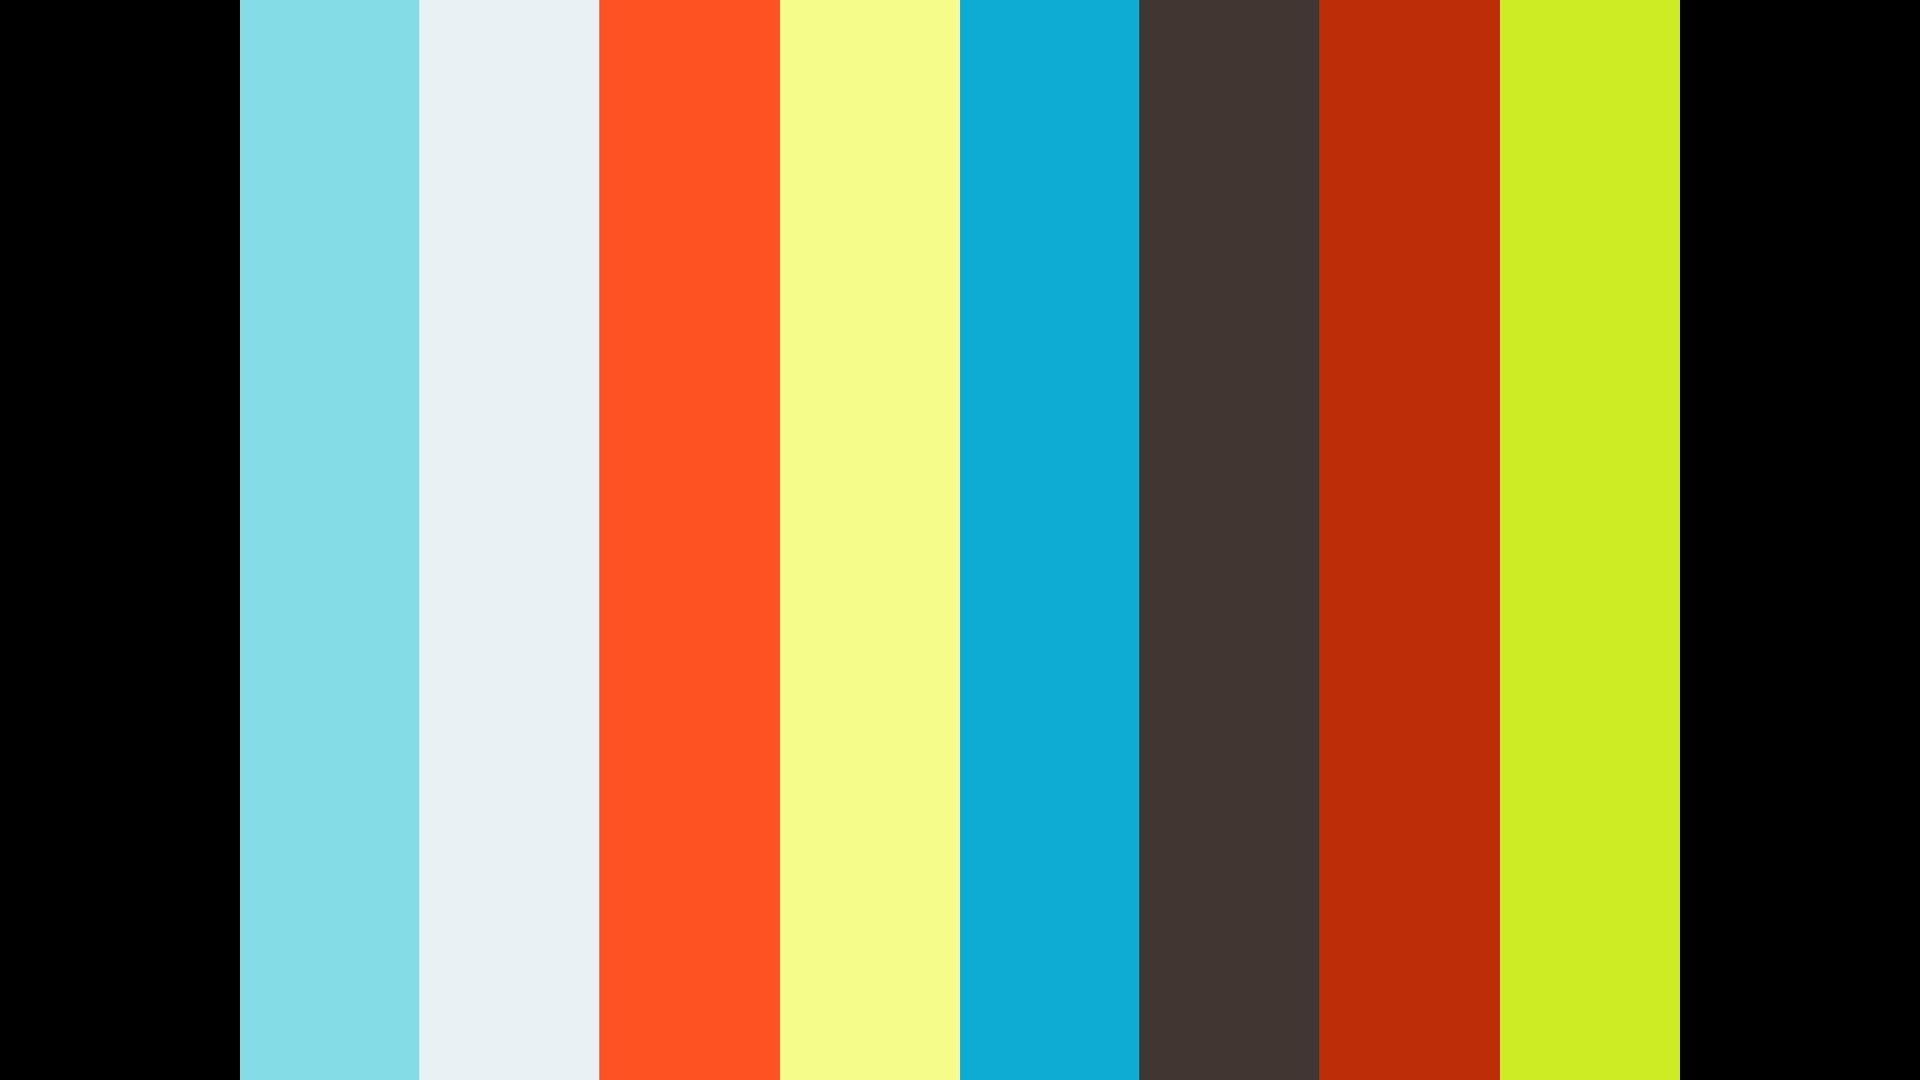 Green Badger's LEED v4 Webinar for General Contractors